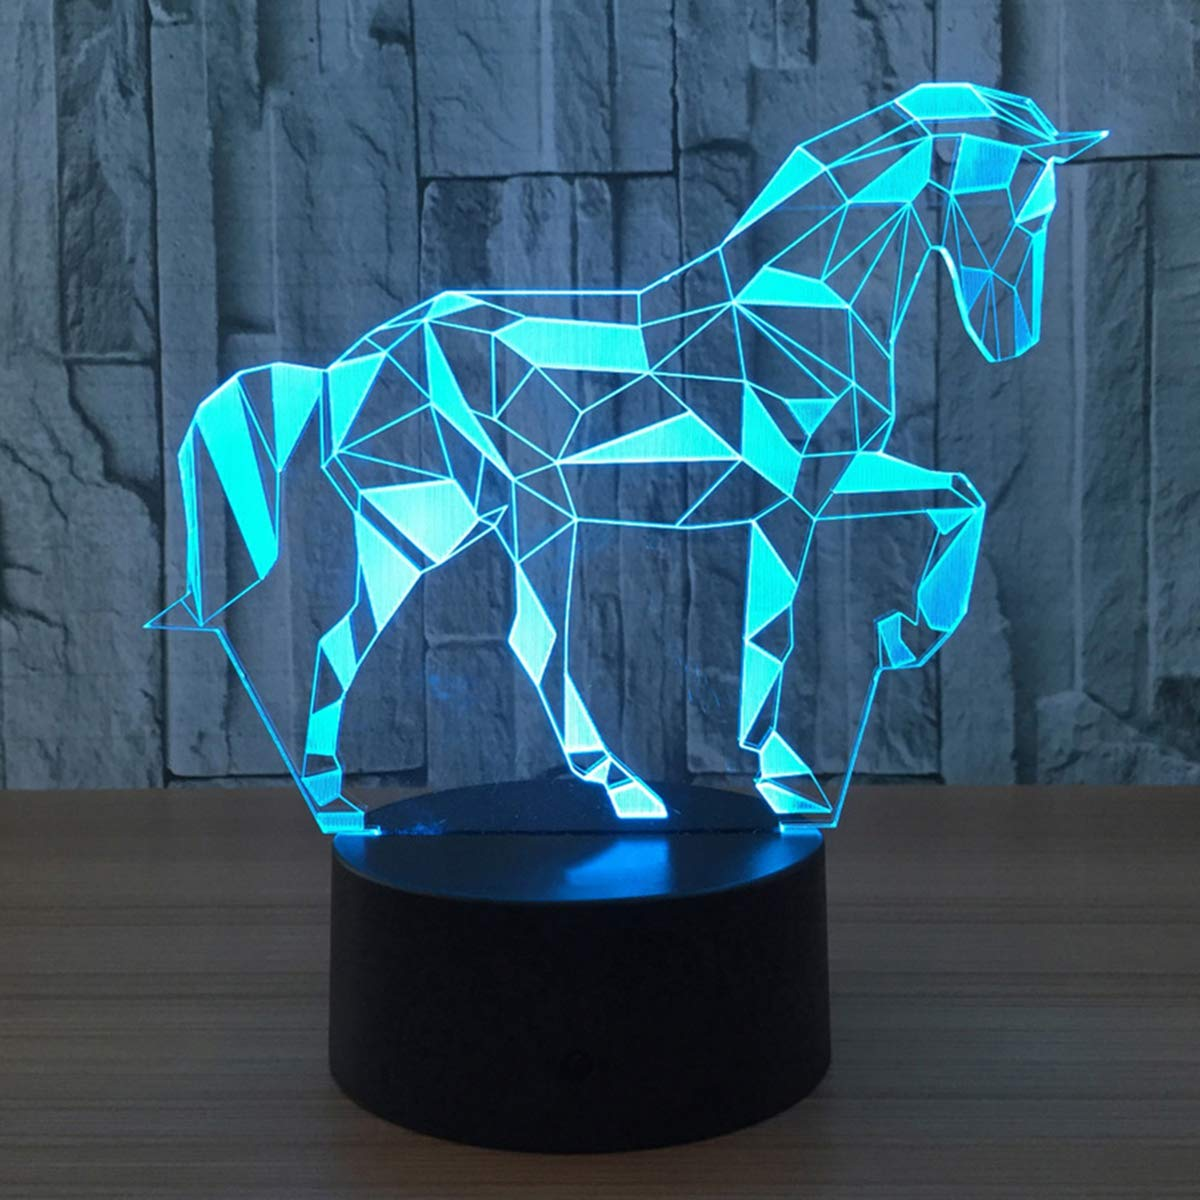 3D Puzzle Horse Illusion Lamps 7 Colour Touch Switch LED Night Lights 150cm USB Cable Kids Lighting for Baby Sleeping Nightlights